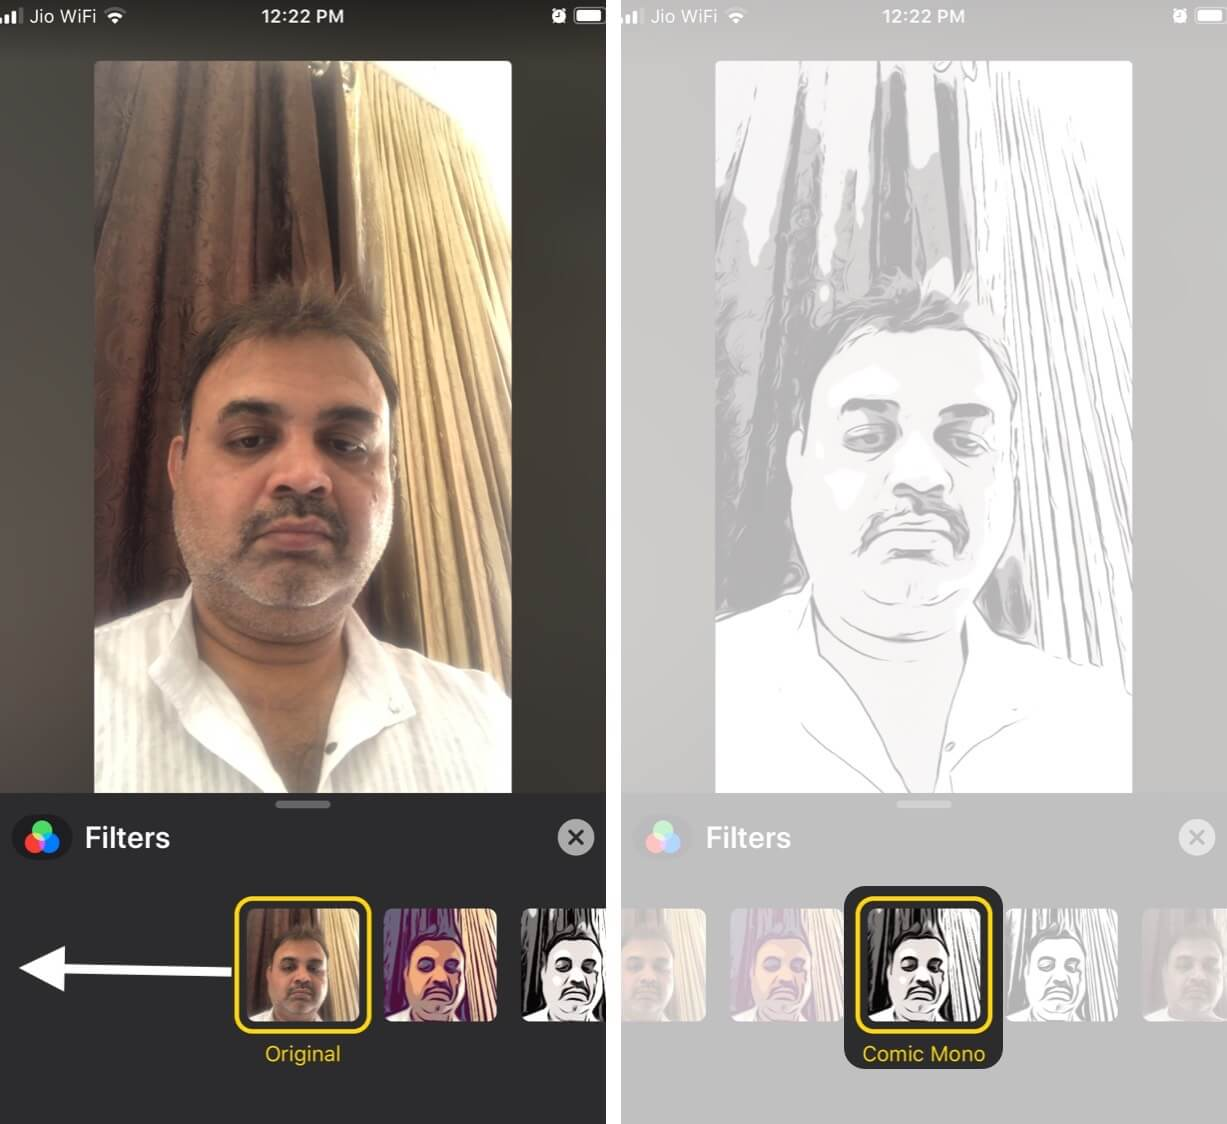 Add Filters to Change Your Face on FaceTime